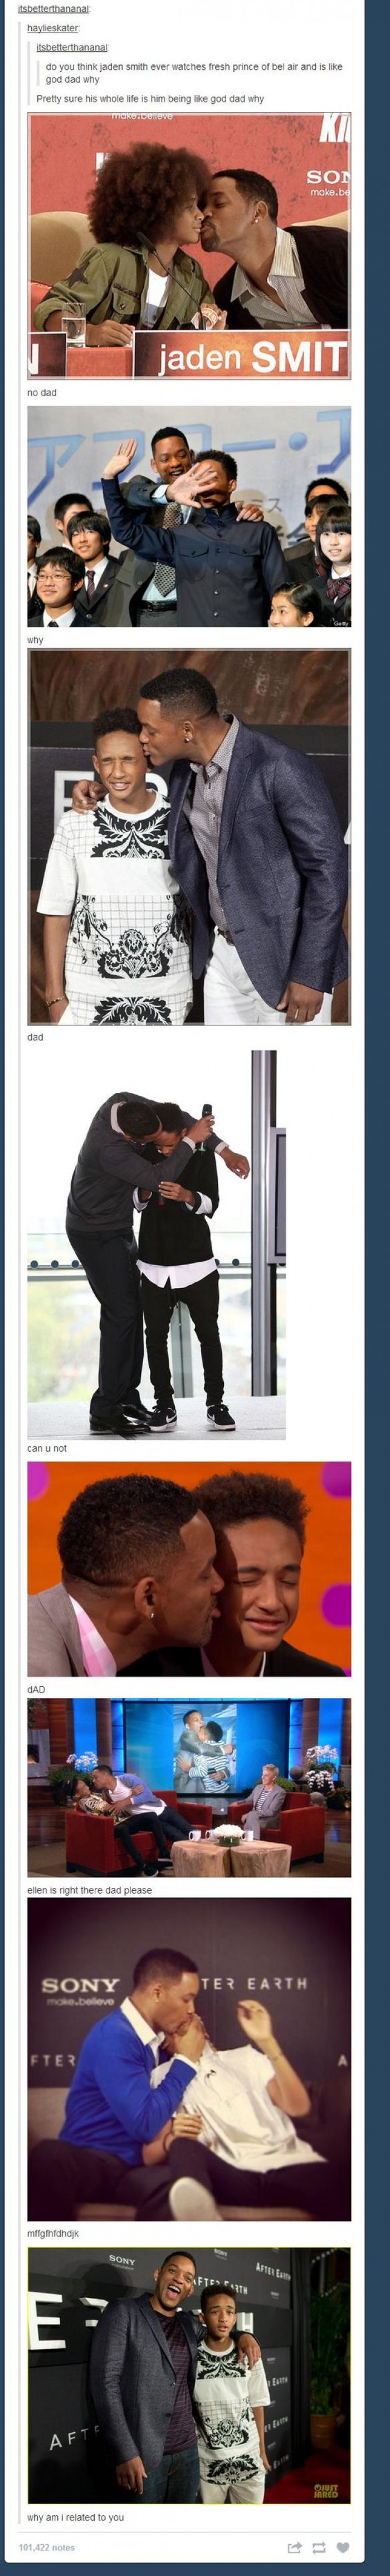 Will Smith, The Best Celebrity Dad